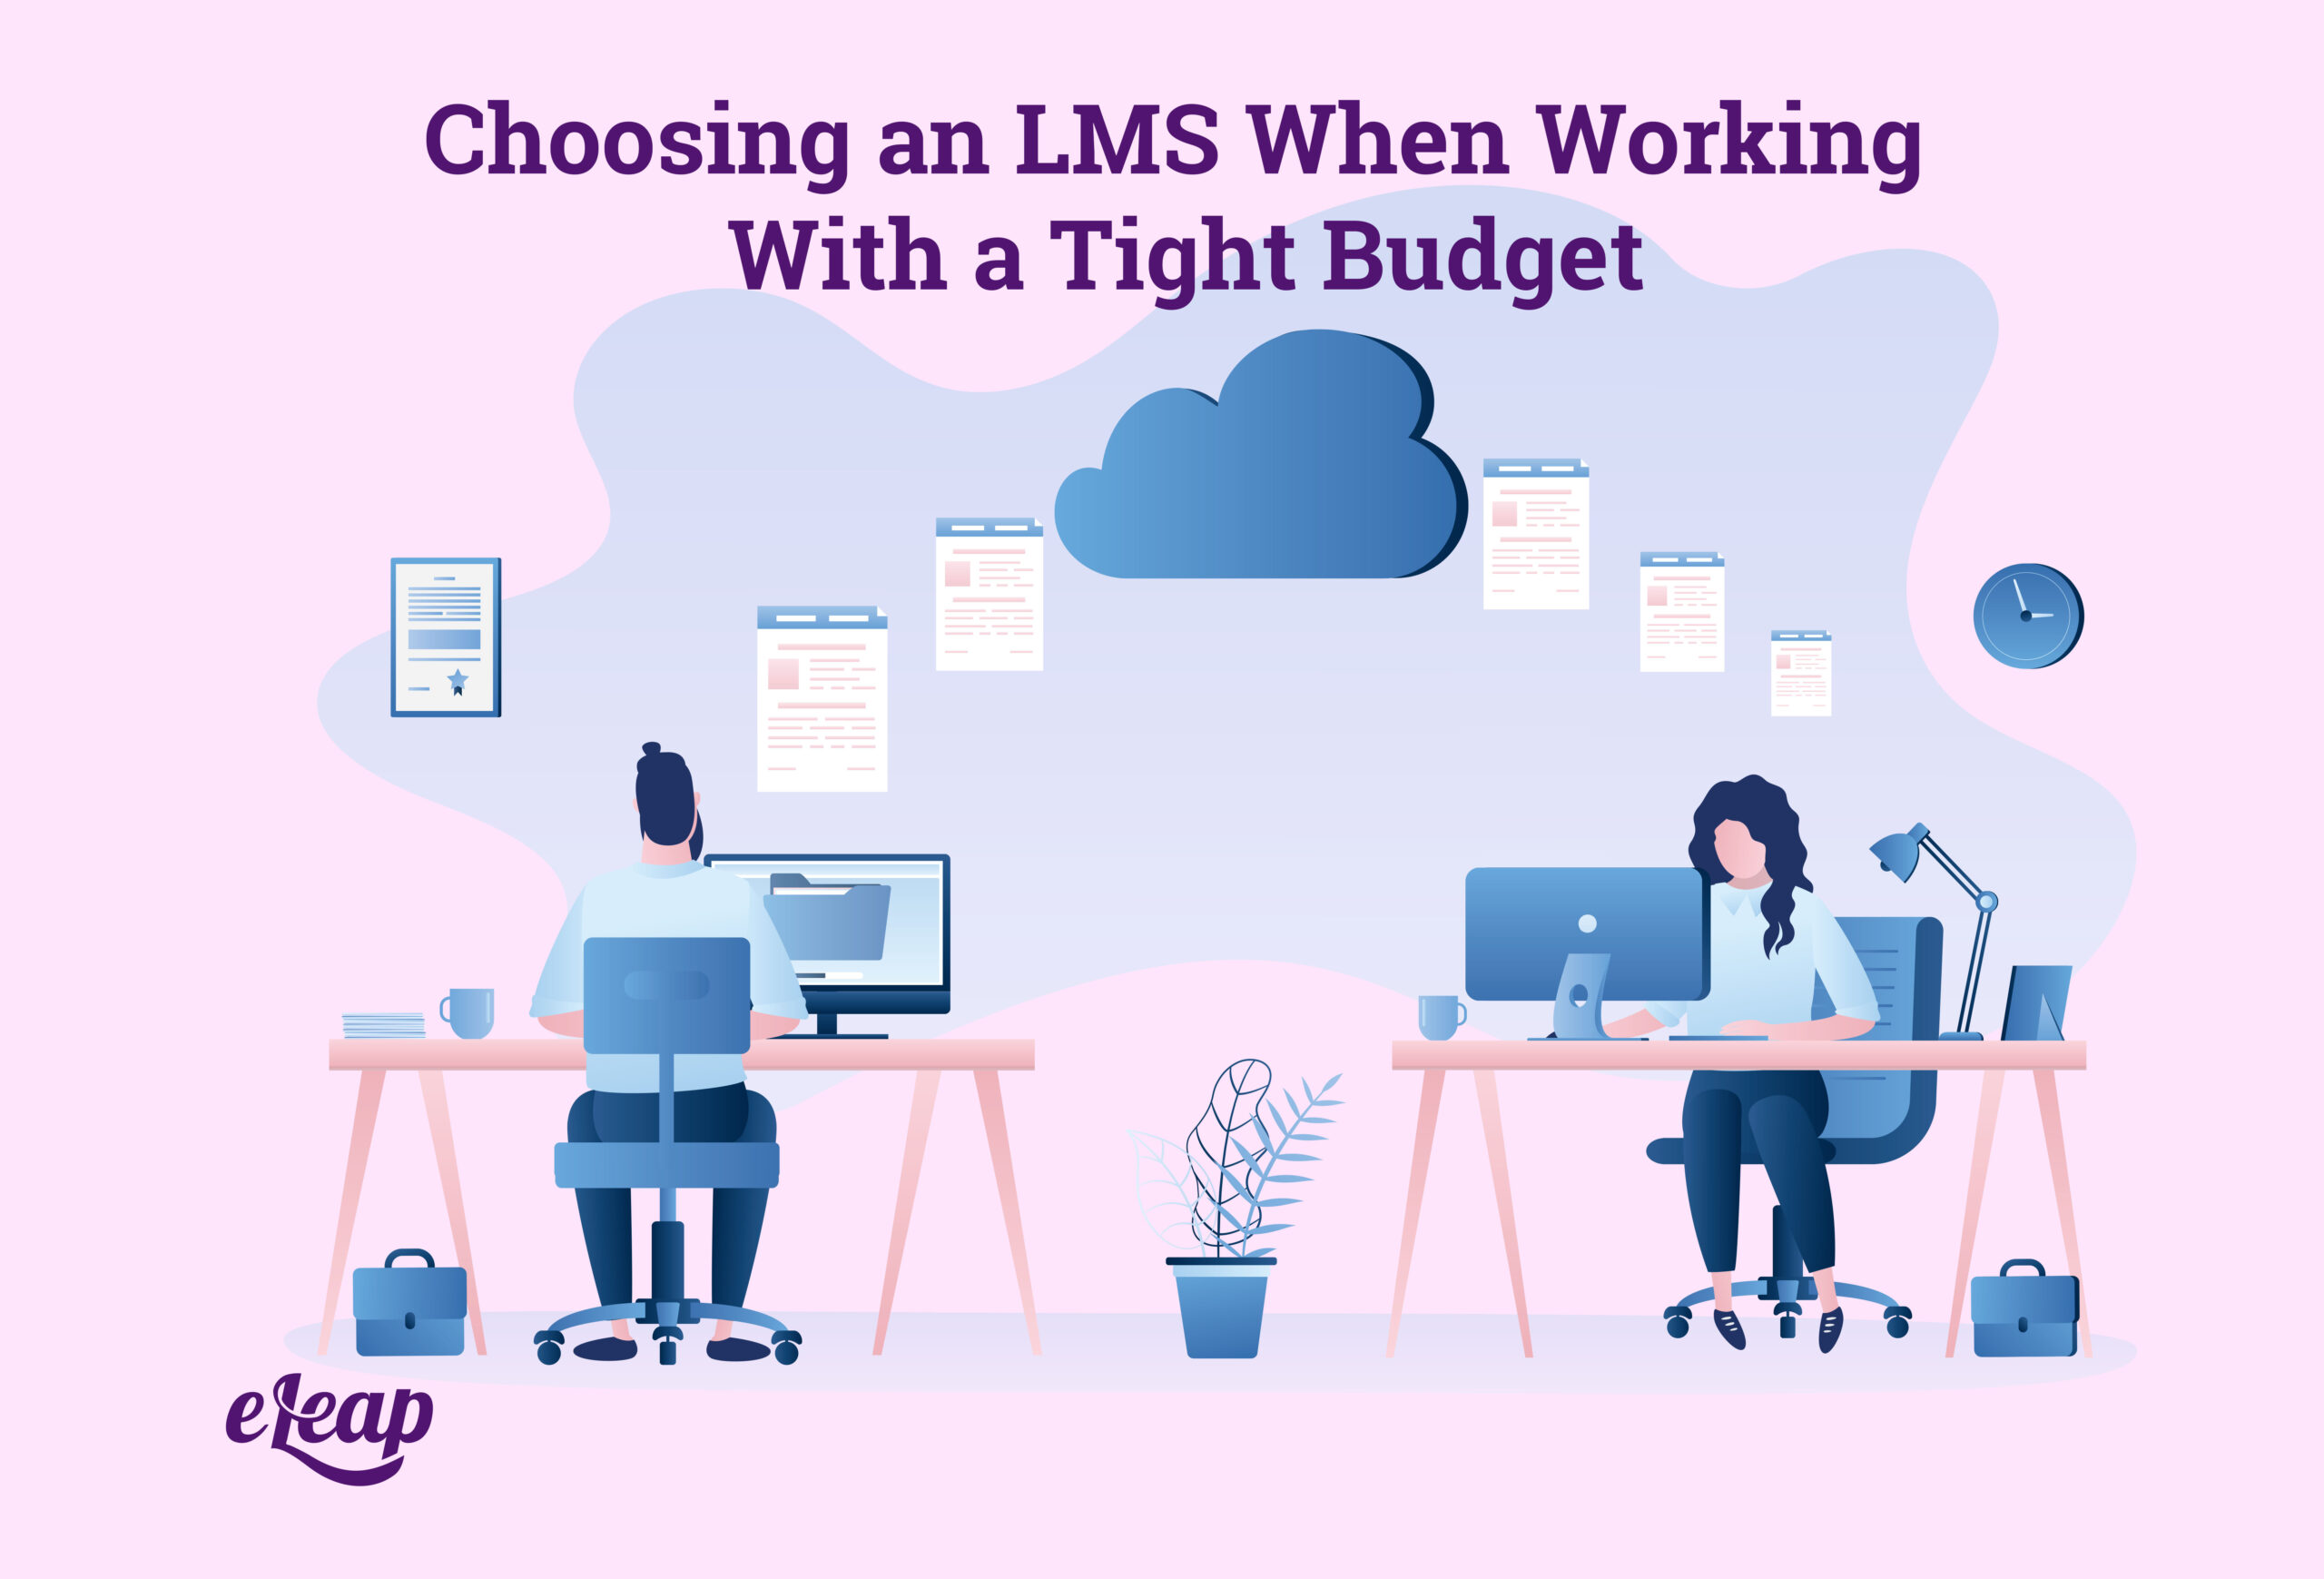 Choosing an LMS When Working With a Tight Budget